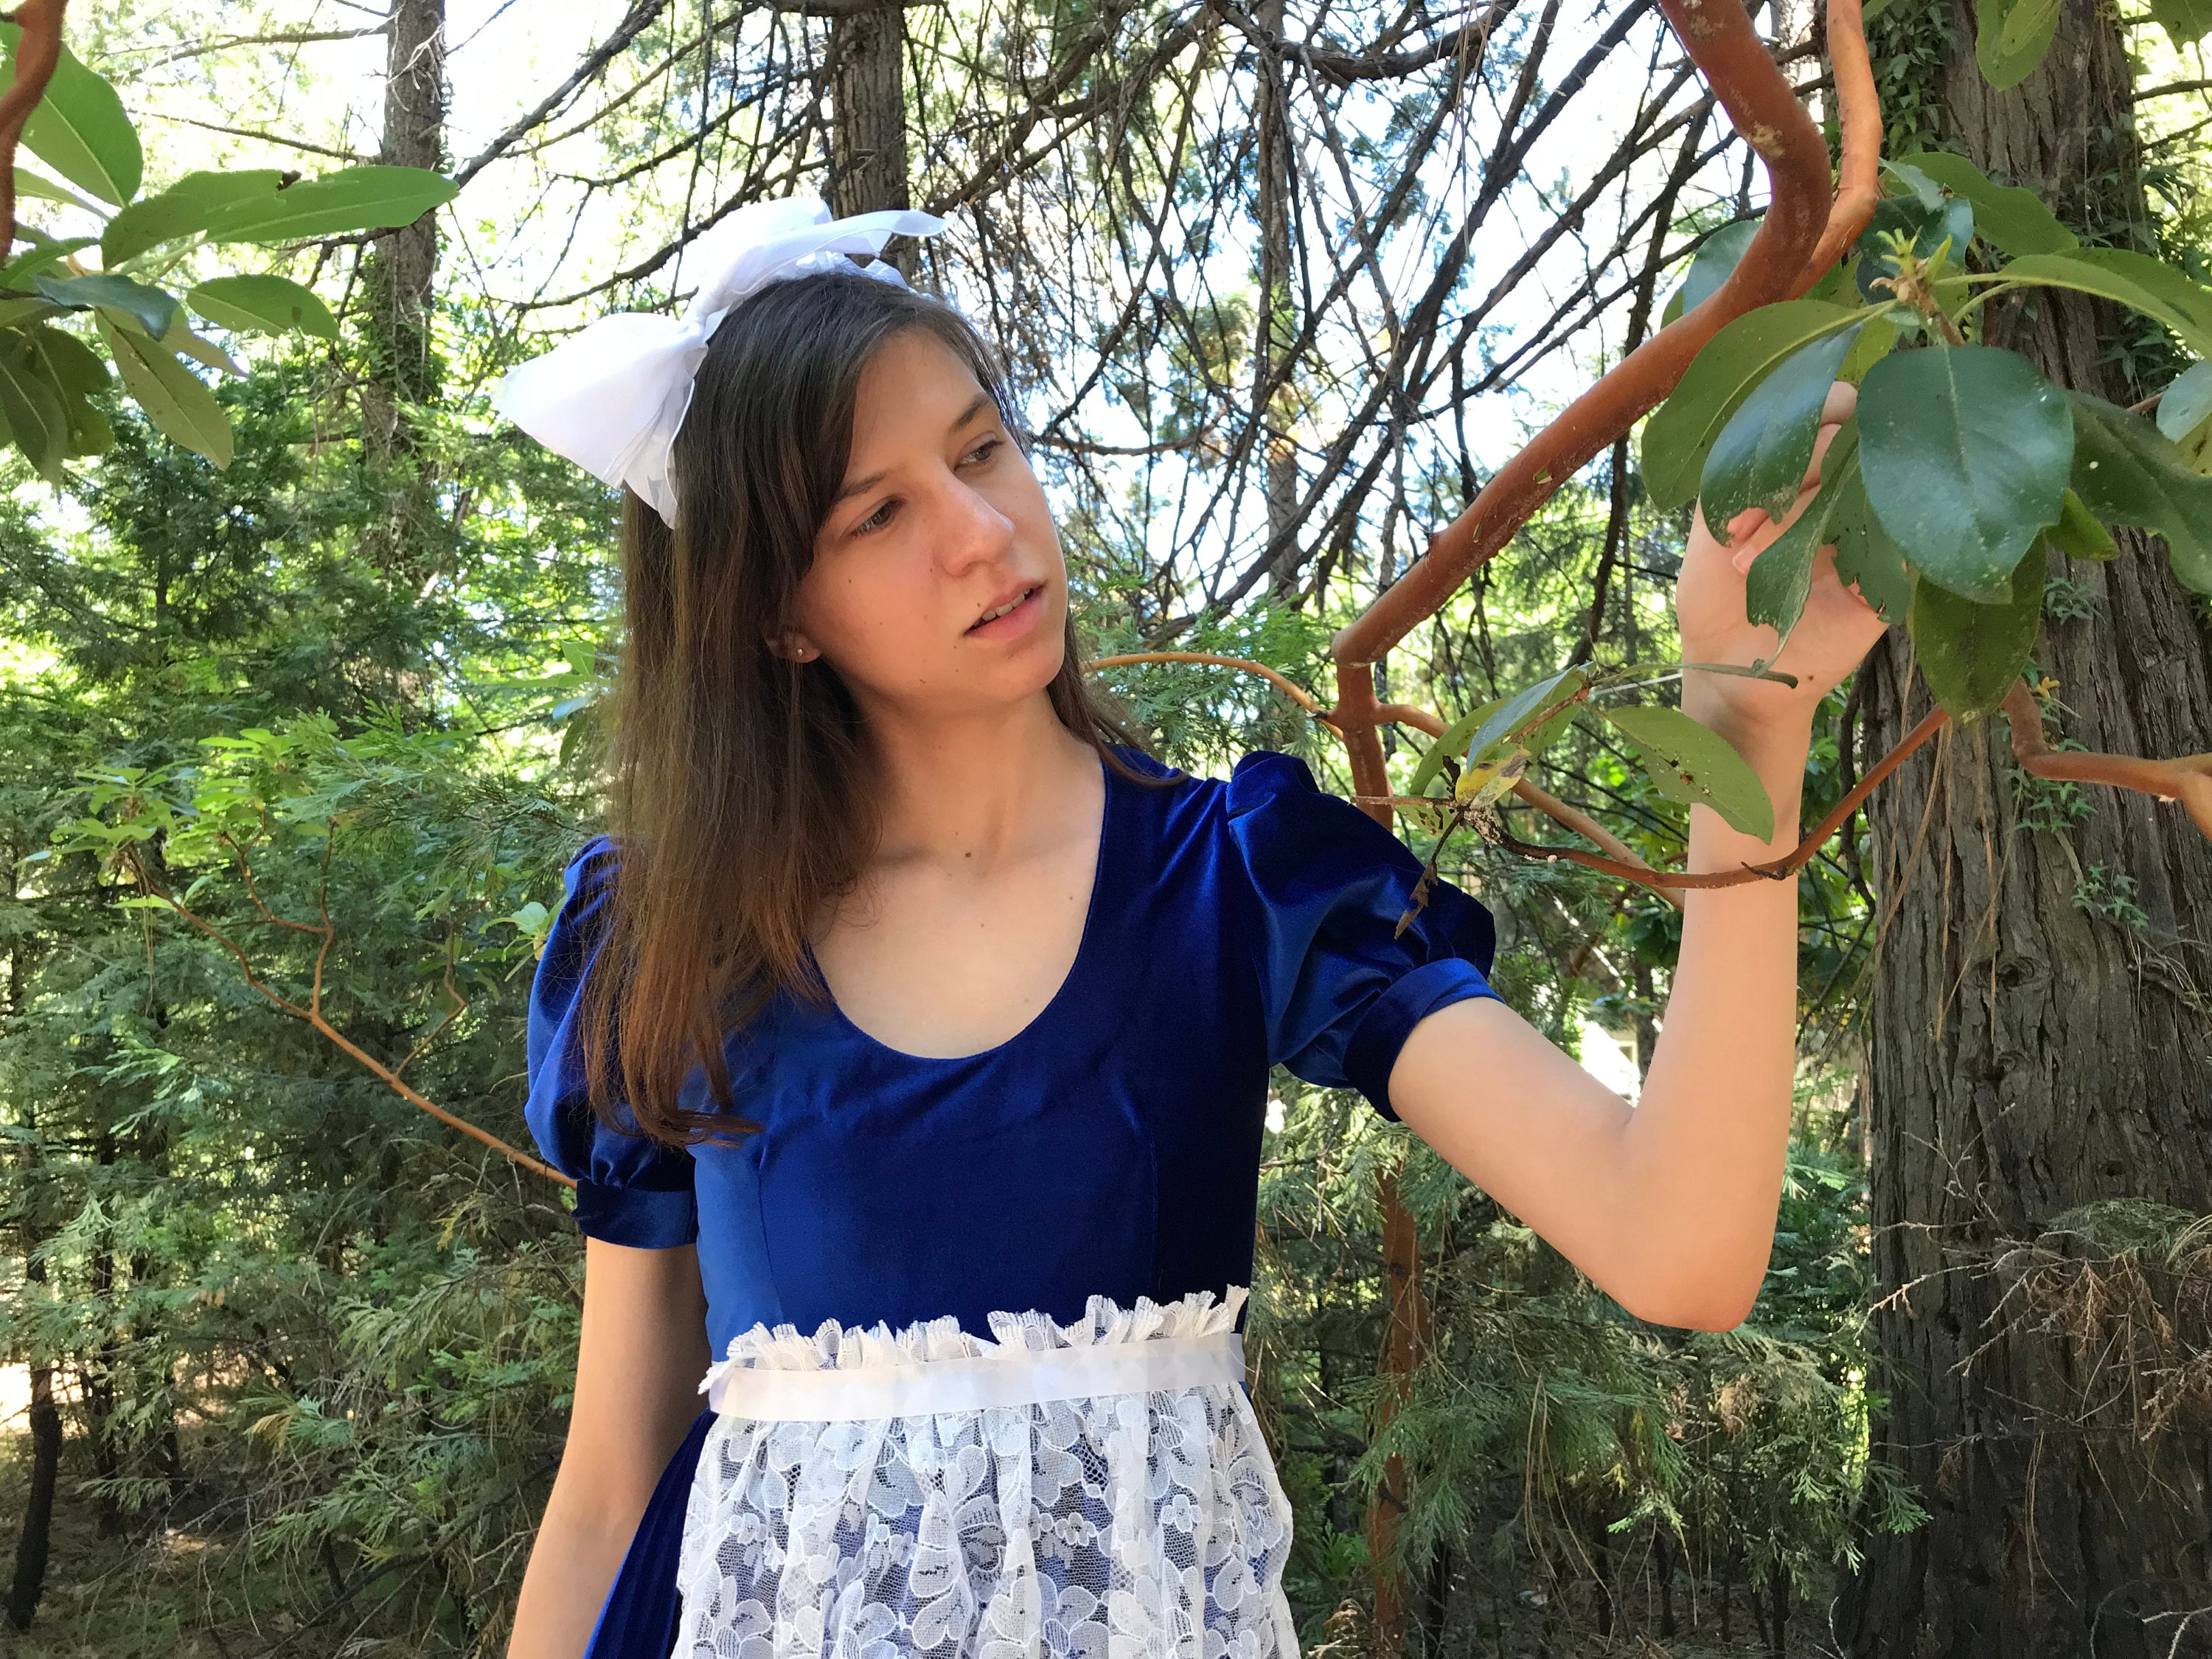 Vintage Aprons, Retro Aprons, Old Fashioned Aprons & Patterns Costume Adult Alice in Wonderland Womens Size 6 Royal Blue Long Dress White Apron Accessories Included One Of A Kind Recycled $61.00 AT vintagedancer.com